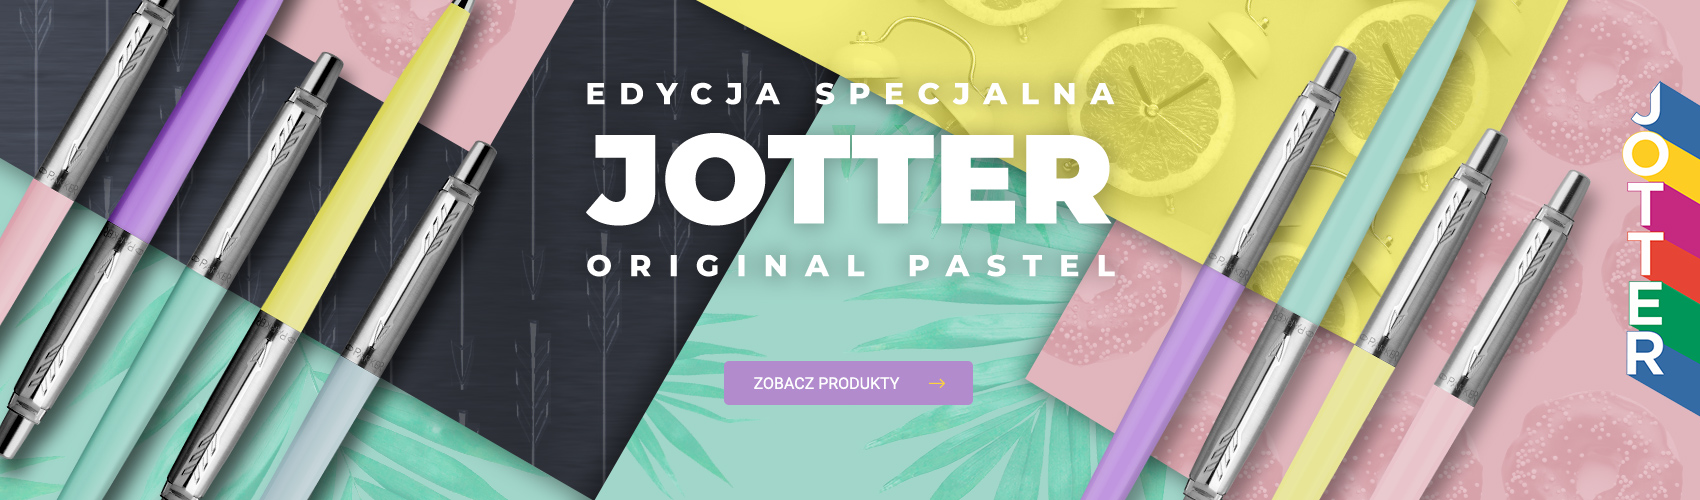 Jotter Pastel 2020 special edition